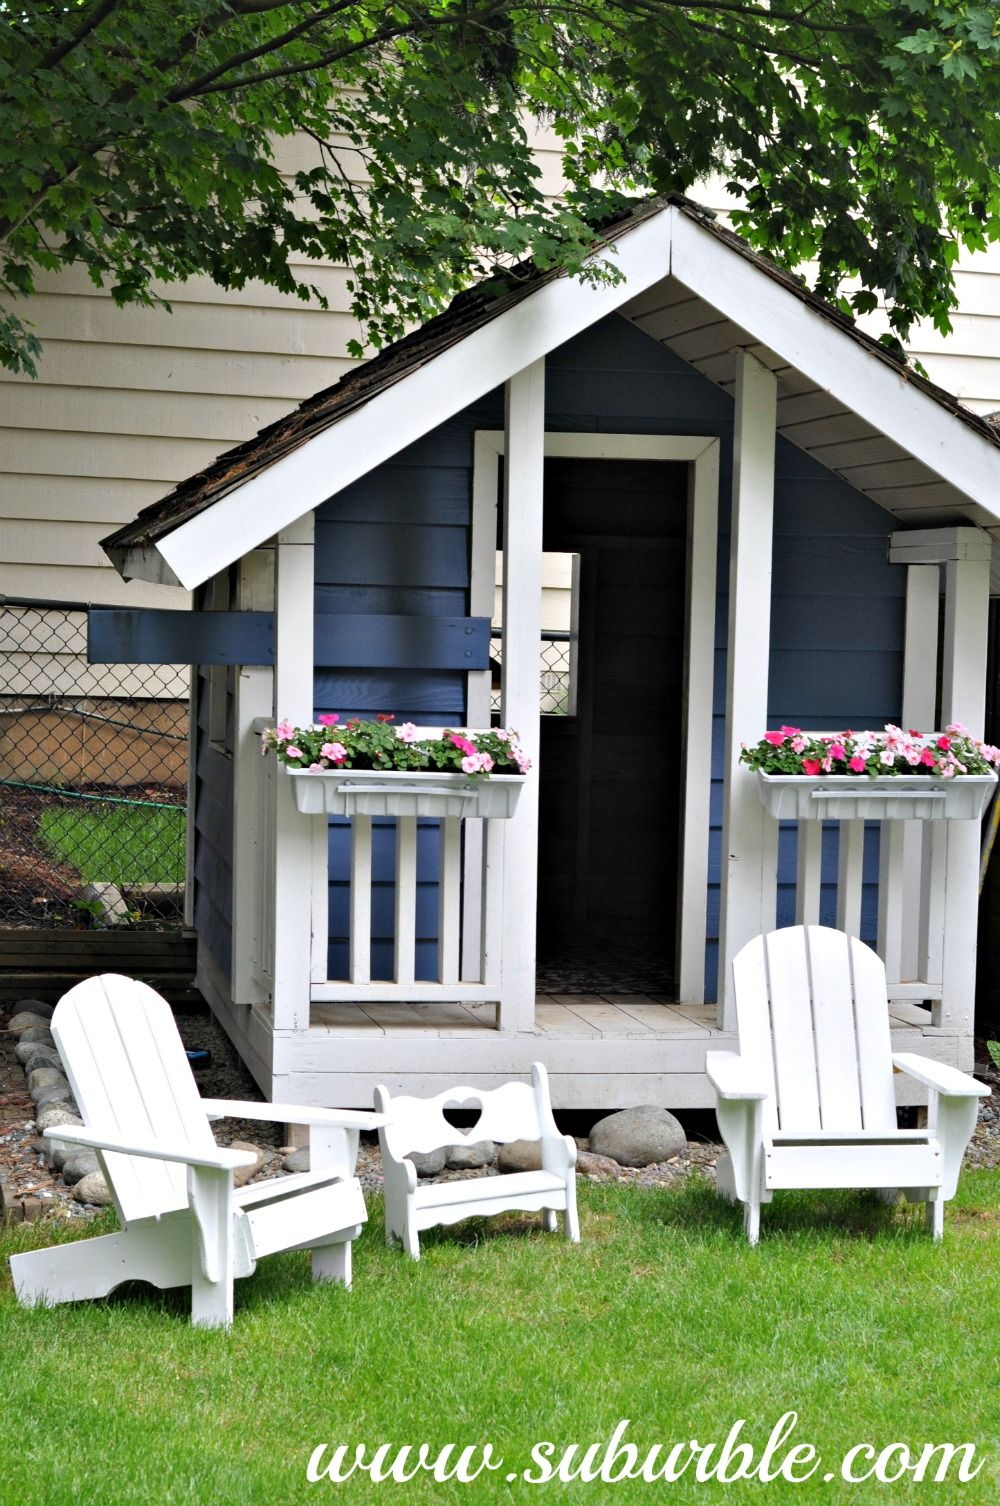 25 amazing outdoor playhouse ideas to keep your kids occupied diy rh pinterest com